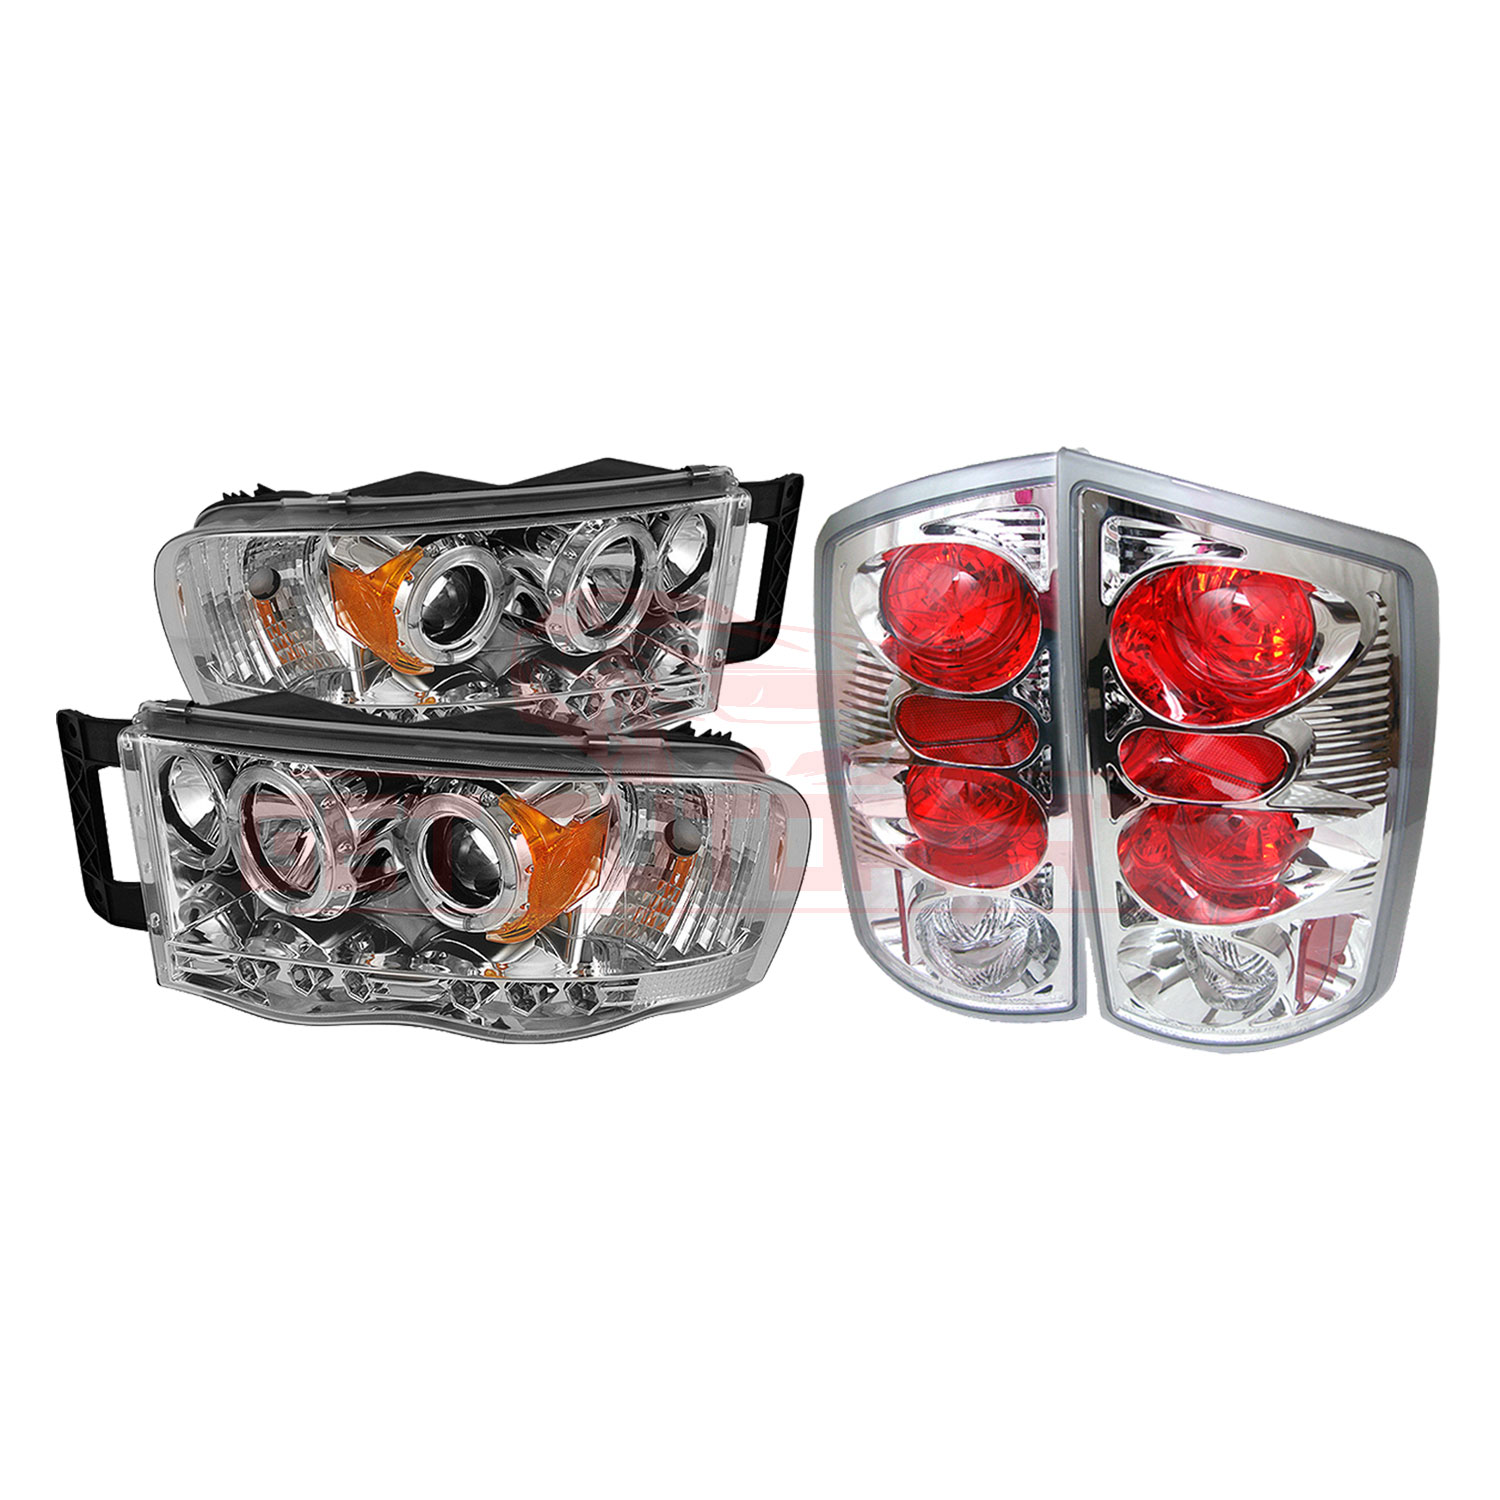 Spyder Halo LED Projector Headlights & Tail Lights for Dodge Ram 2002-05 part in Headlight & Tail Light Covers category